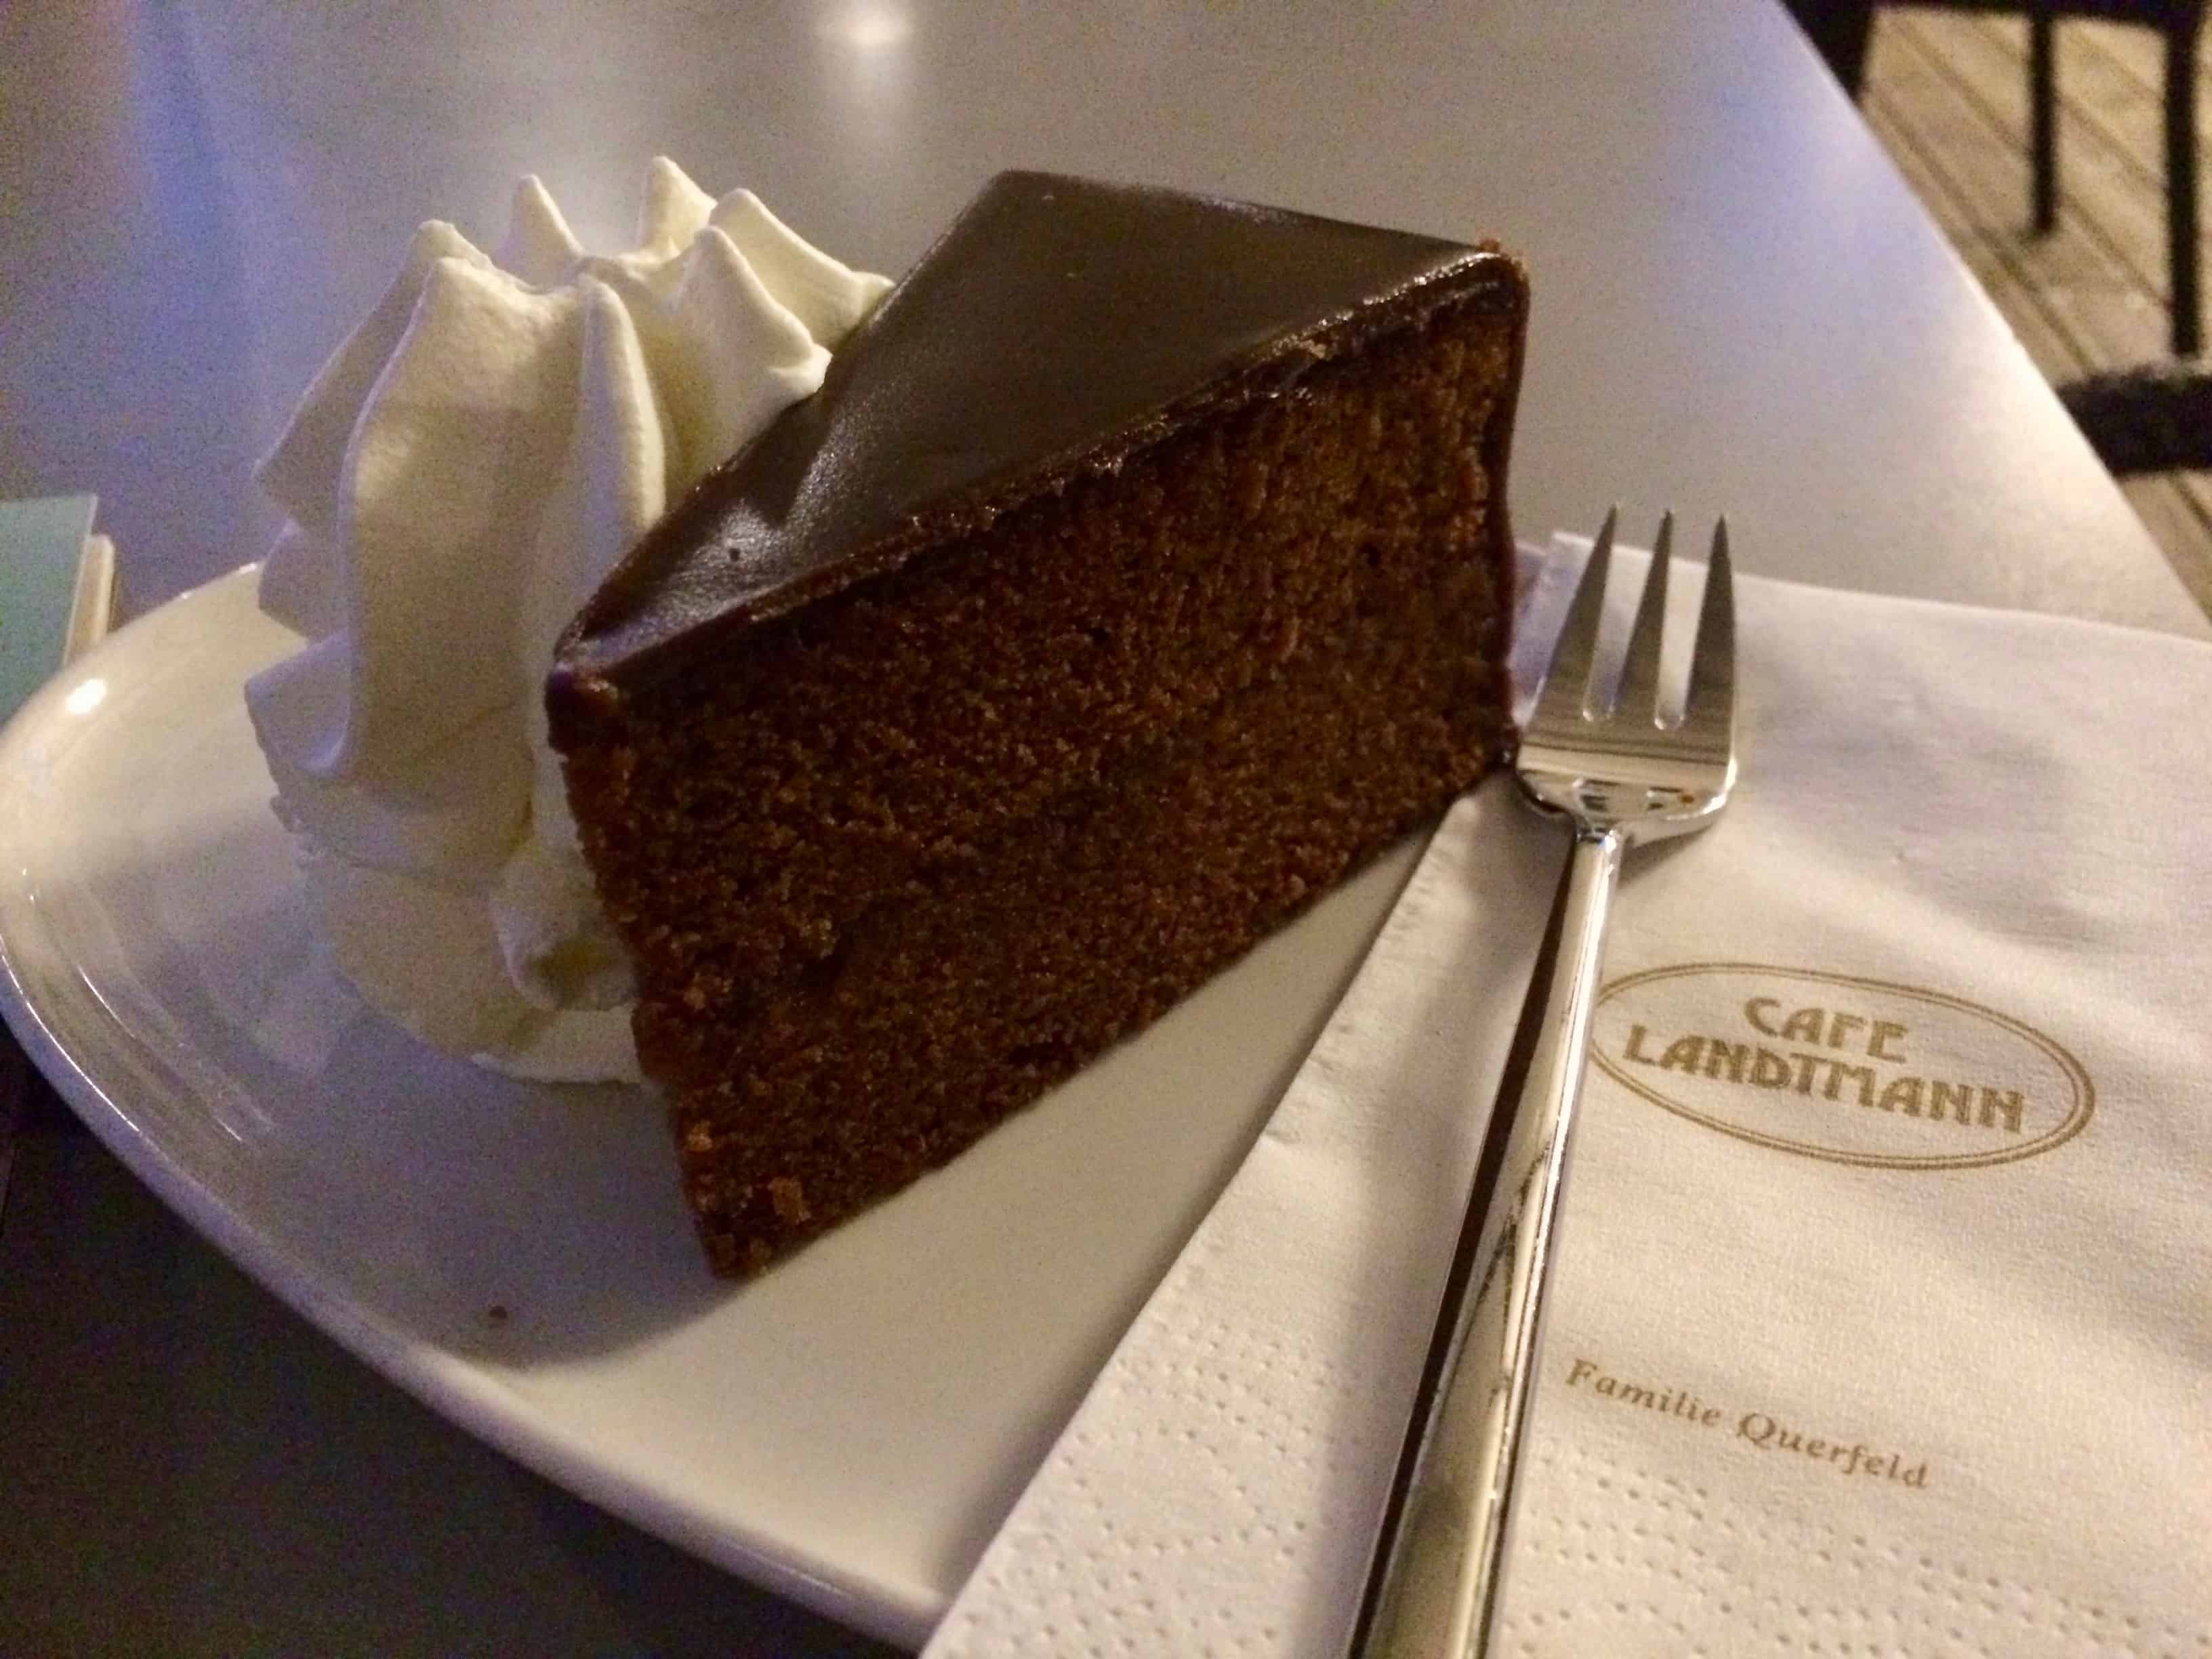 Peru Küche Wien 2 Days In Vienna Cafe Landtmann Sacher Torte The Wherever Writer